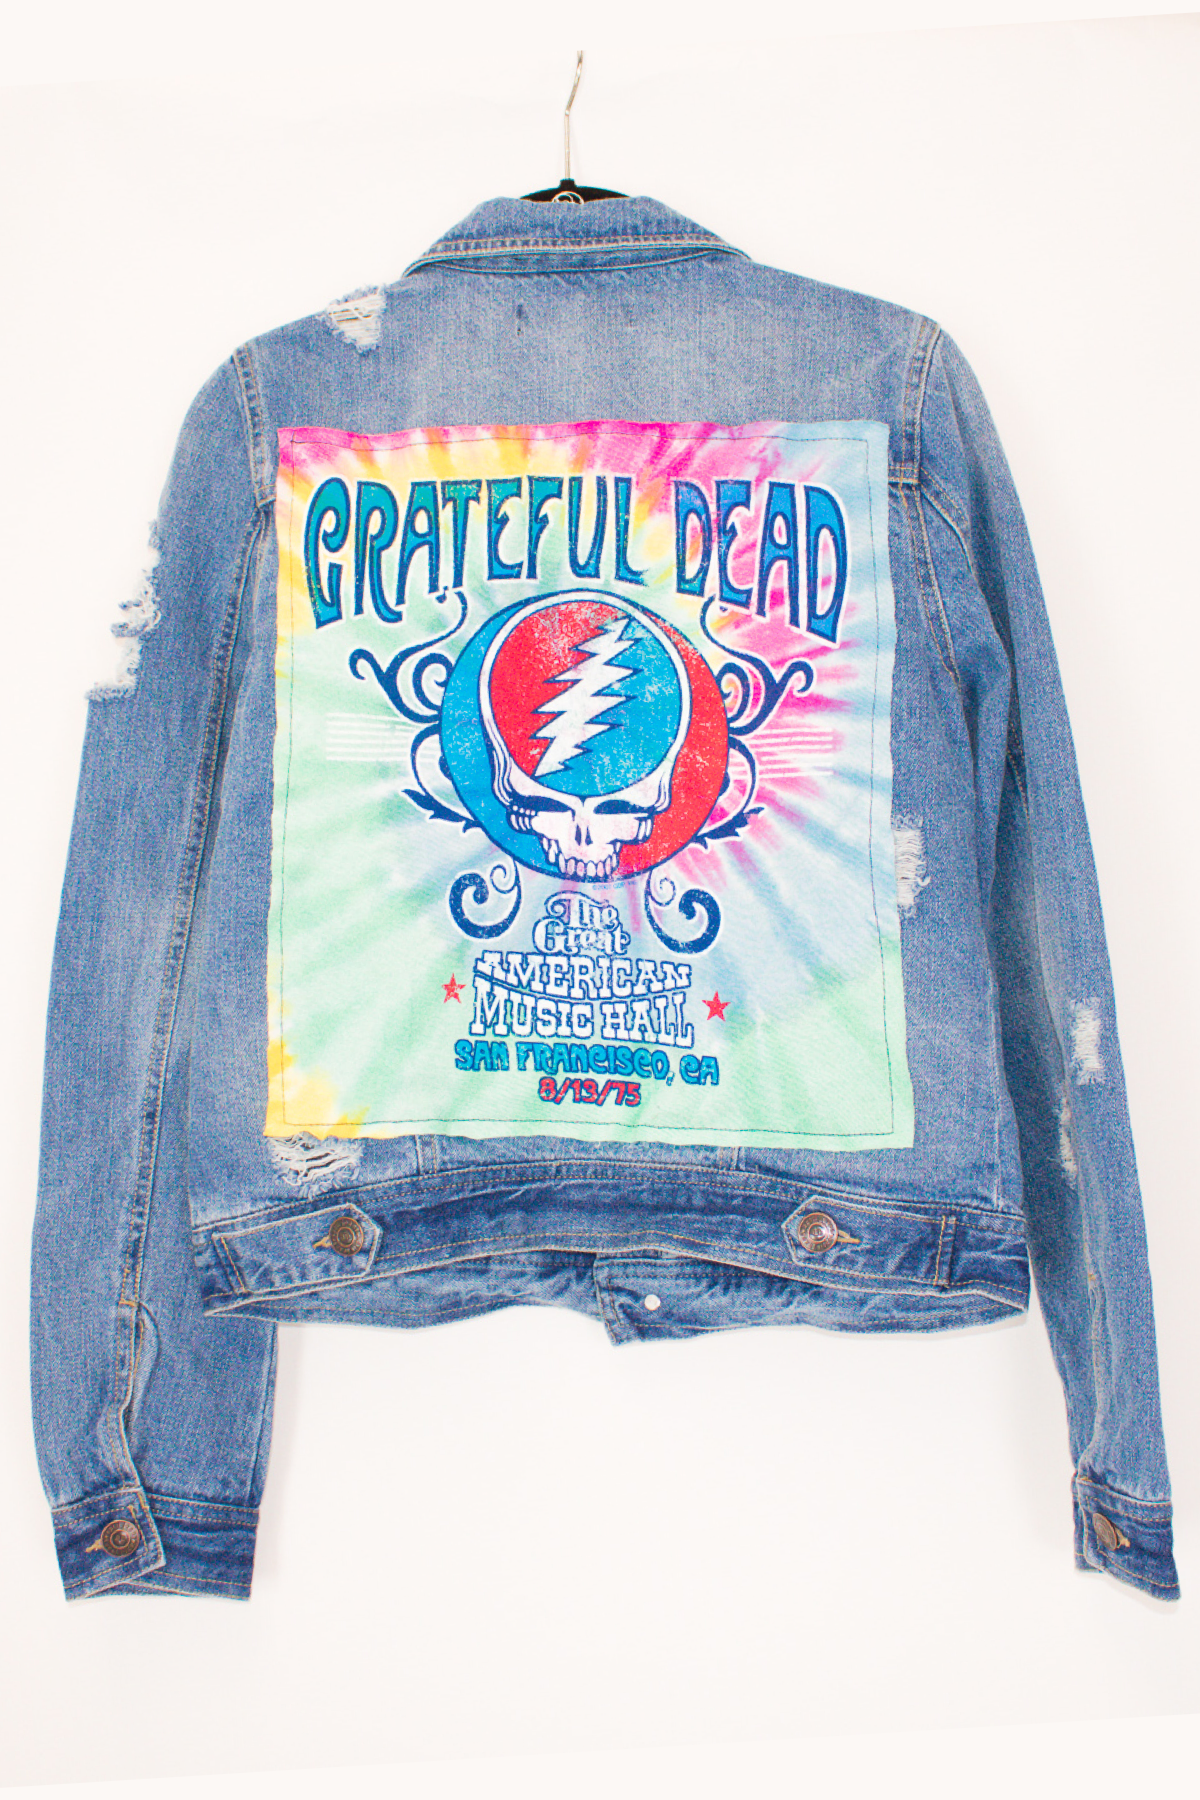 TIE DYE GRATEFUL DEAD PATCHWORK DENIM JACKET